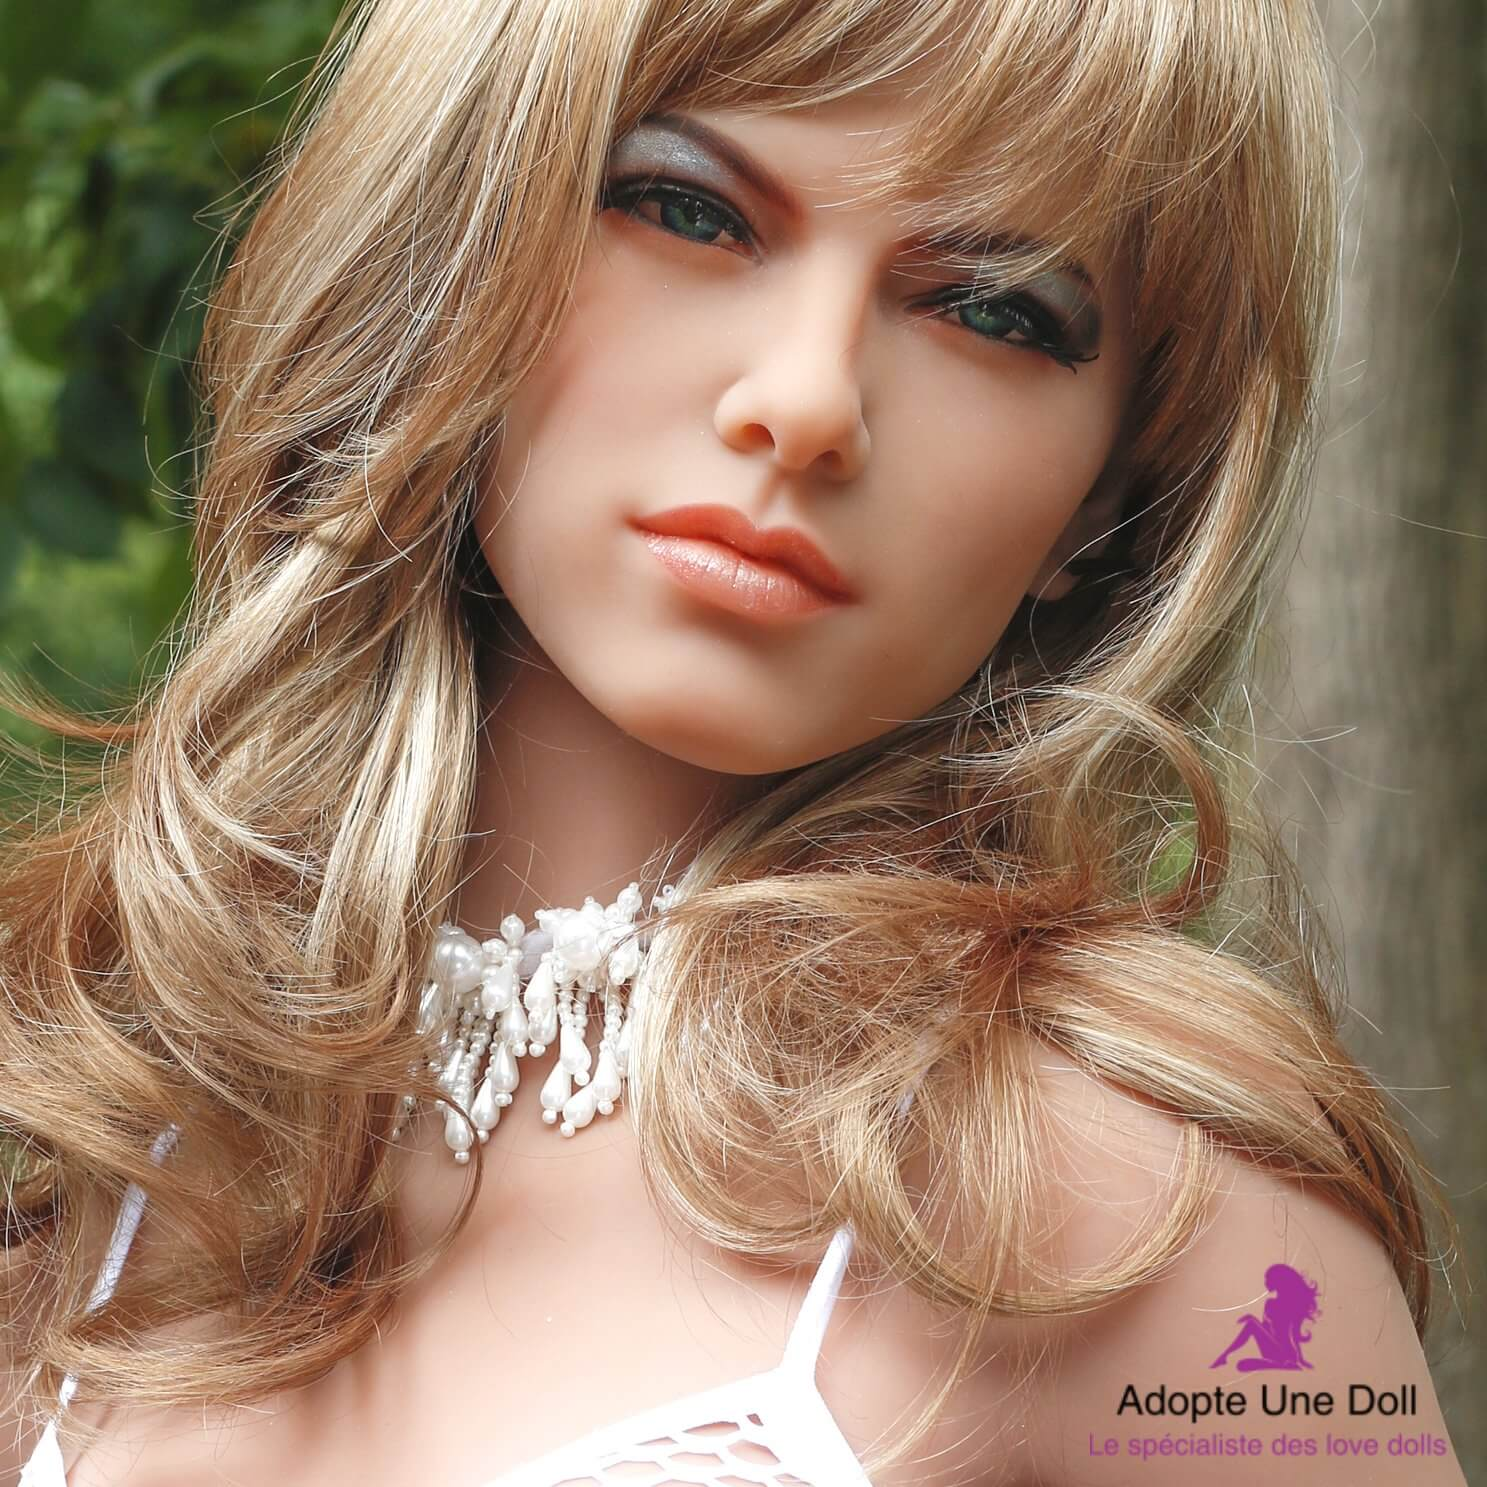 Love doll 6YE Doll Premium Polly 165 - Sex doll en france Adopte une doll